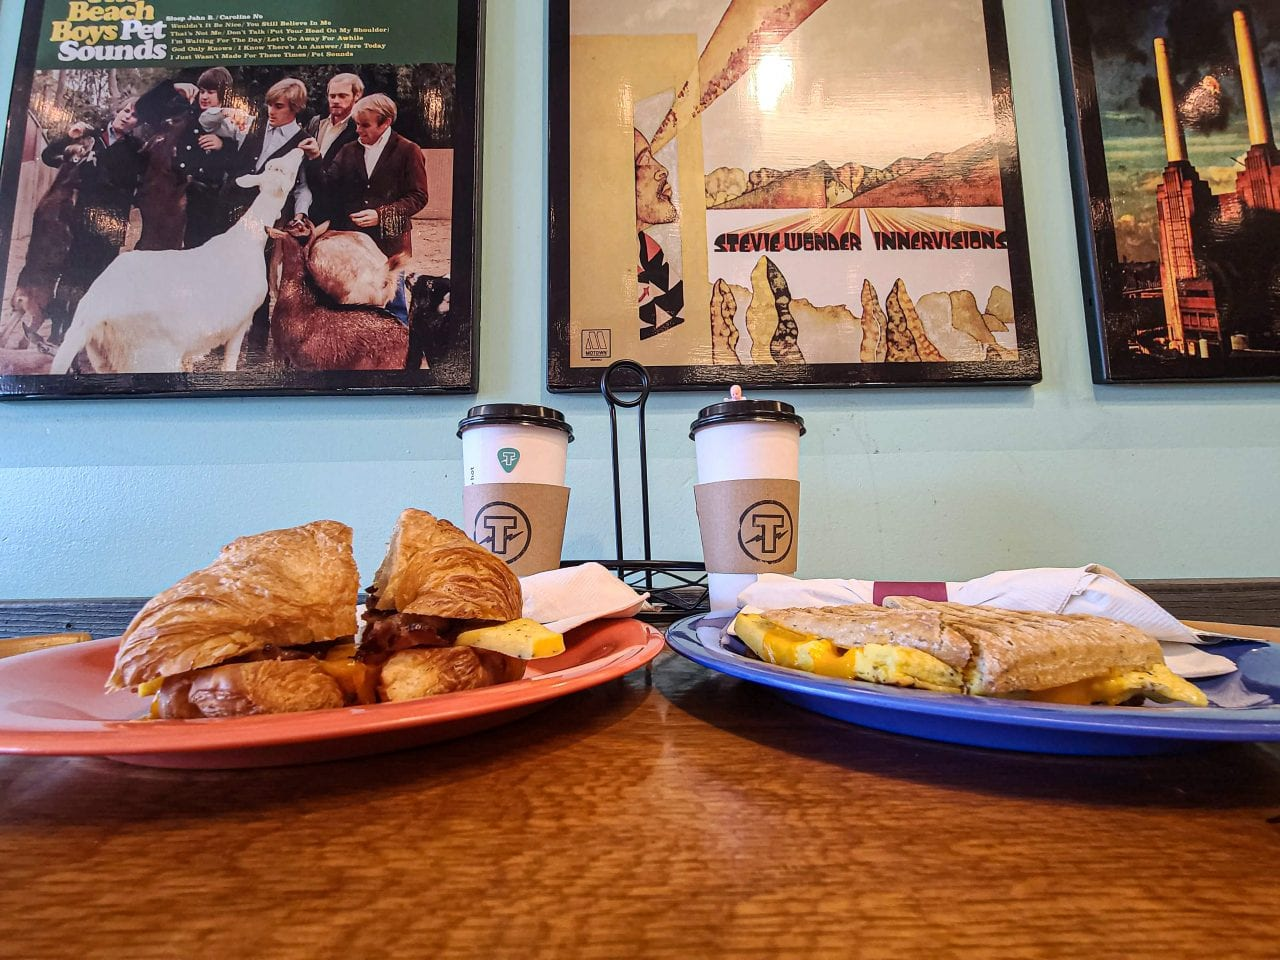 Breakfast at TBones Records and Cafe